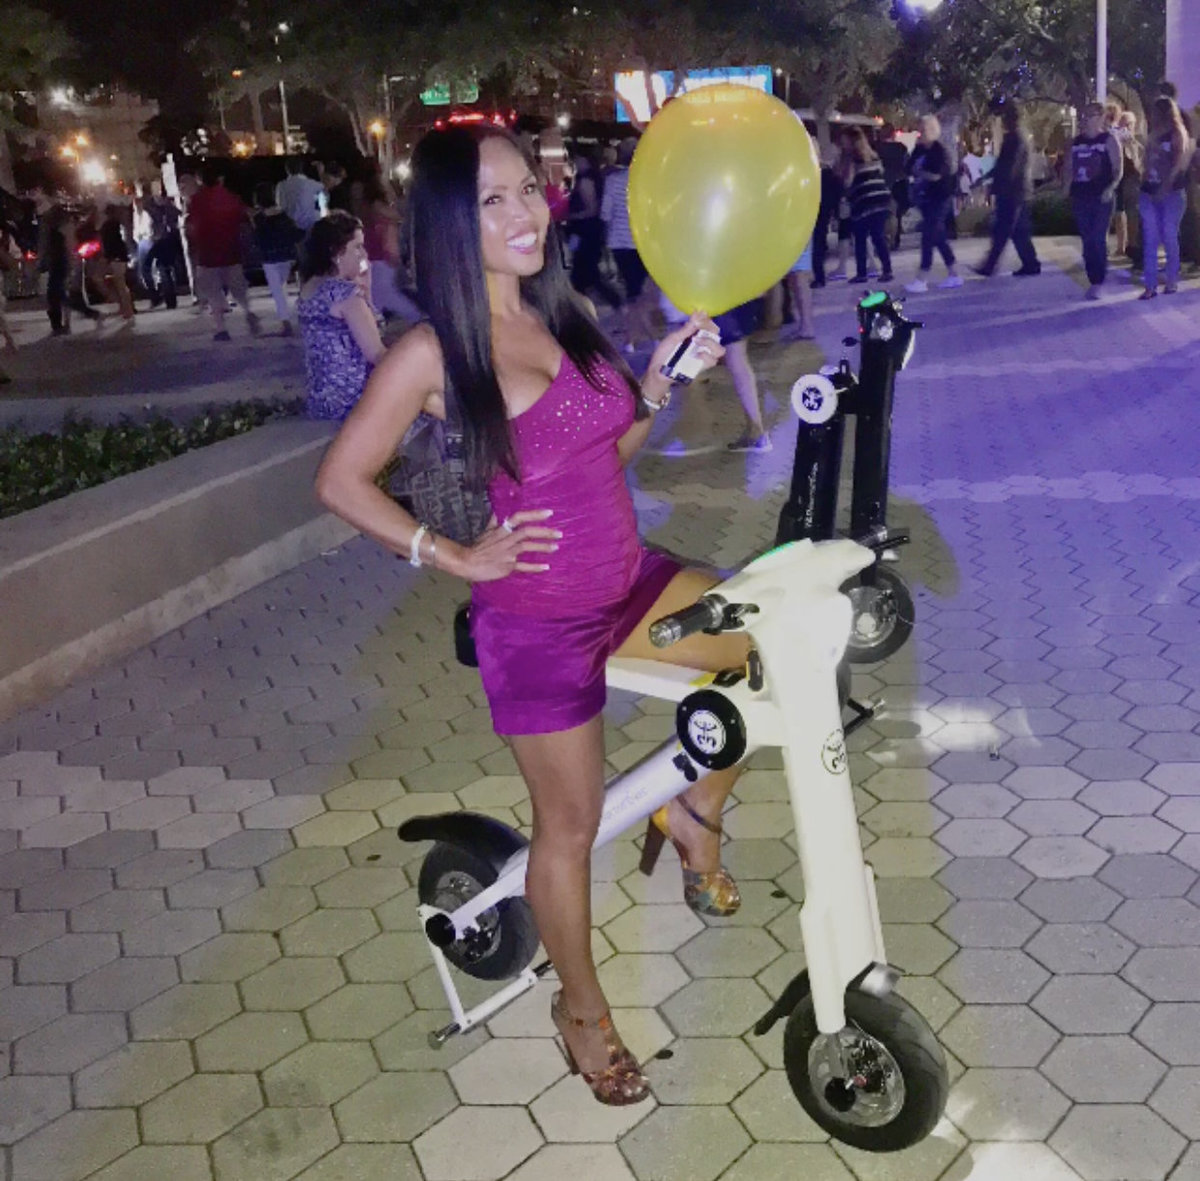 Lady with ballon having night out on the town on White Go-Bike M1